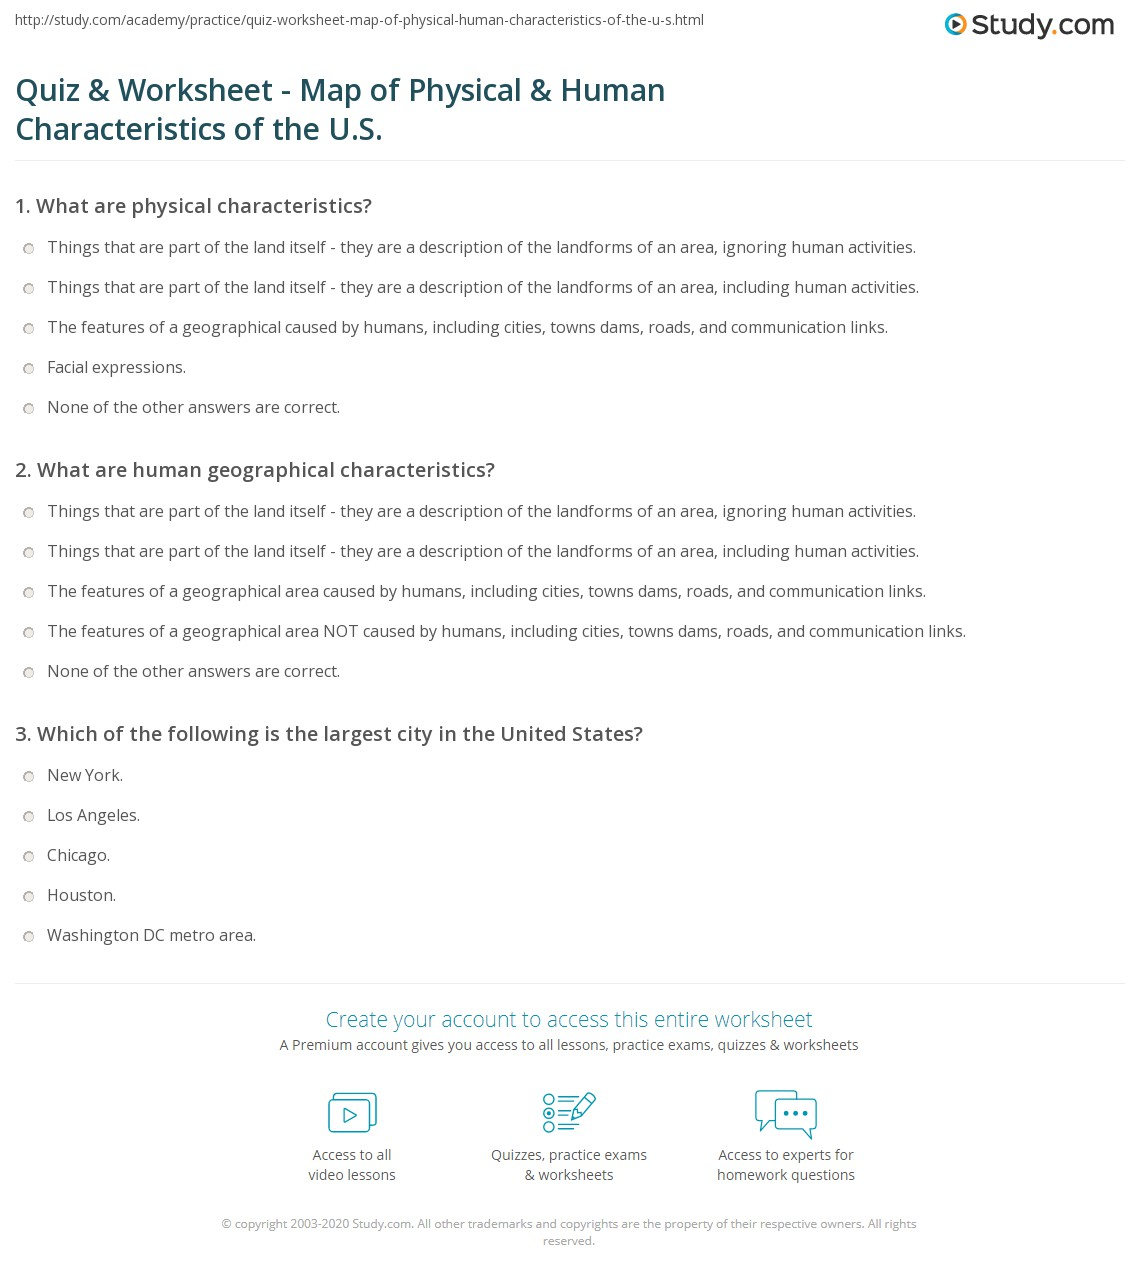 Quiz & Worksheet Map of Physical & Human Characteristics of the